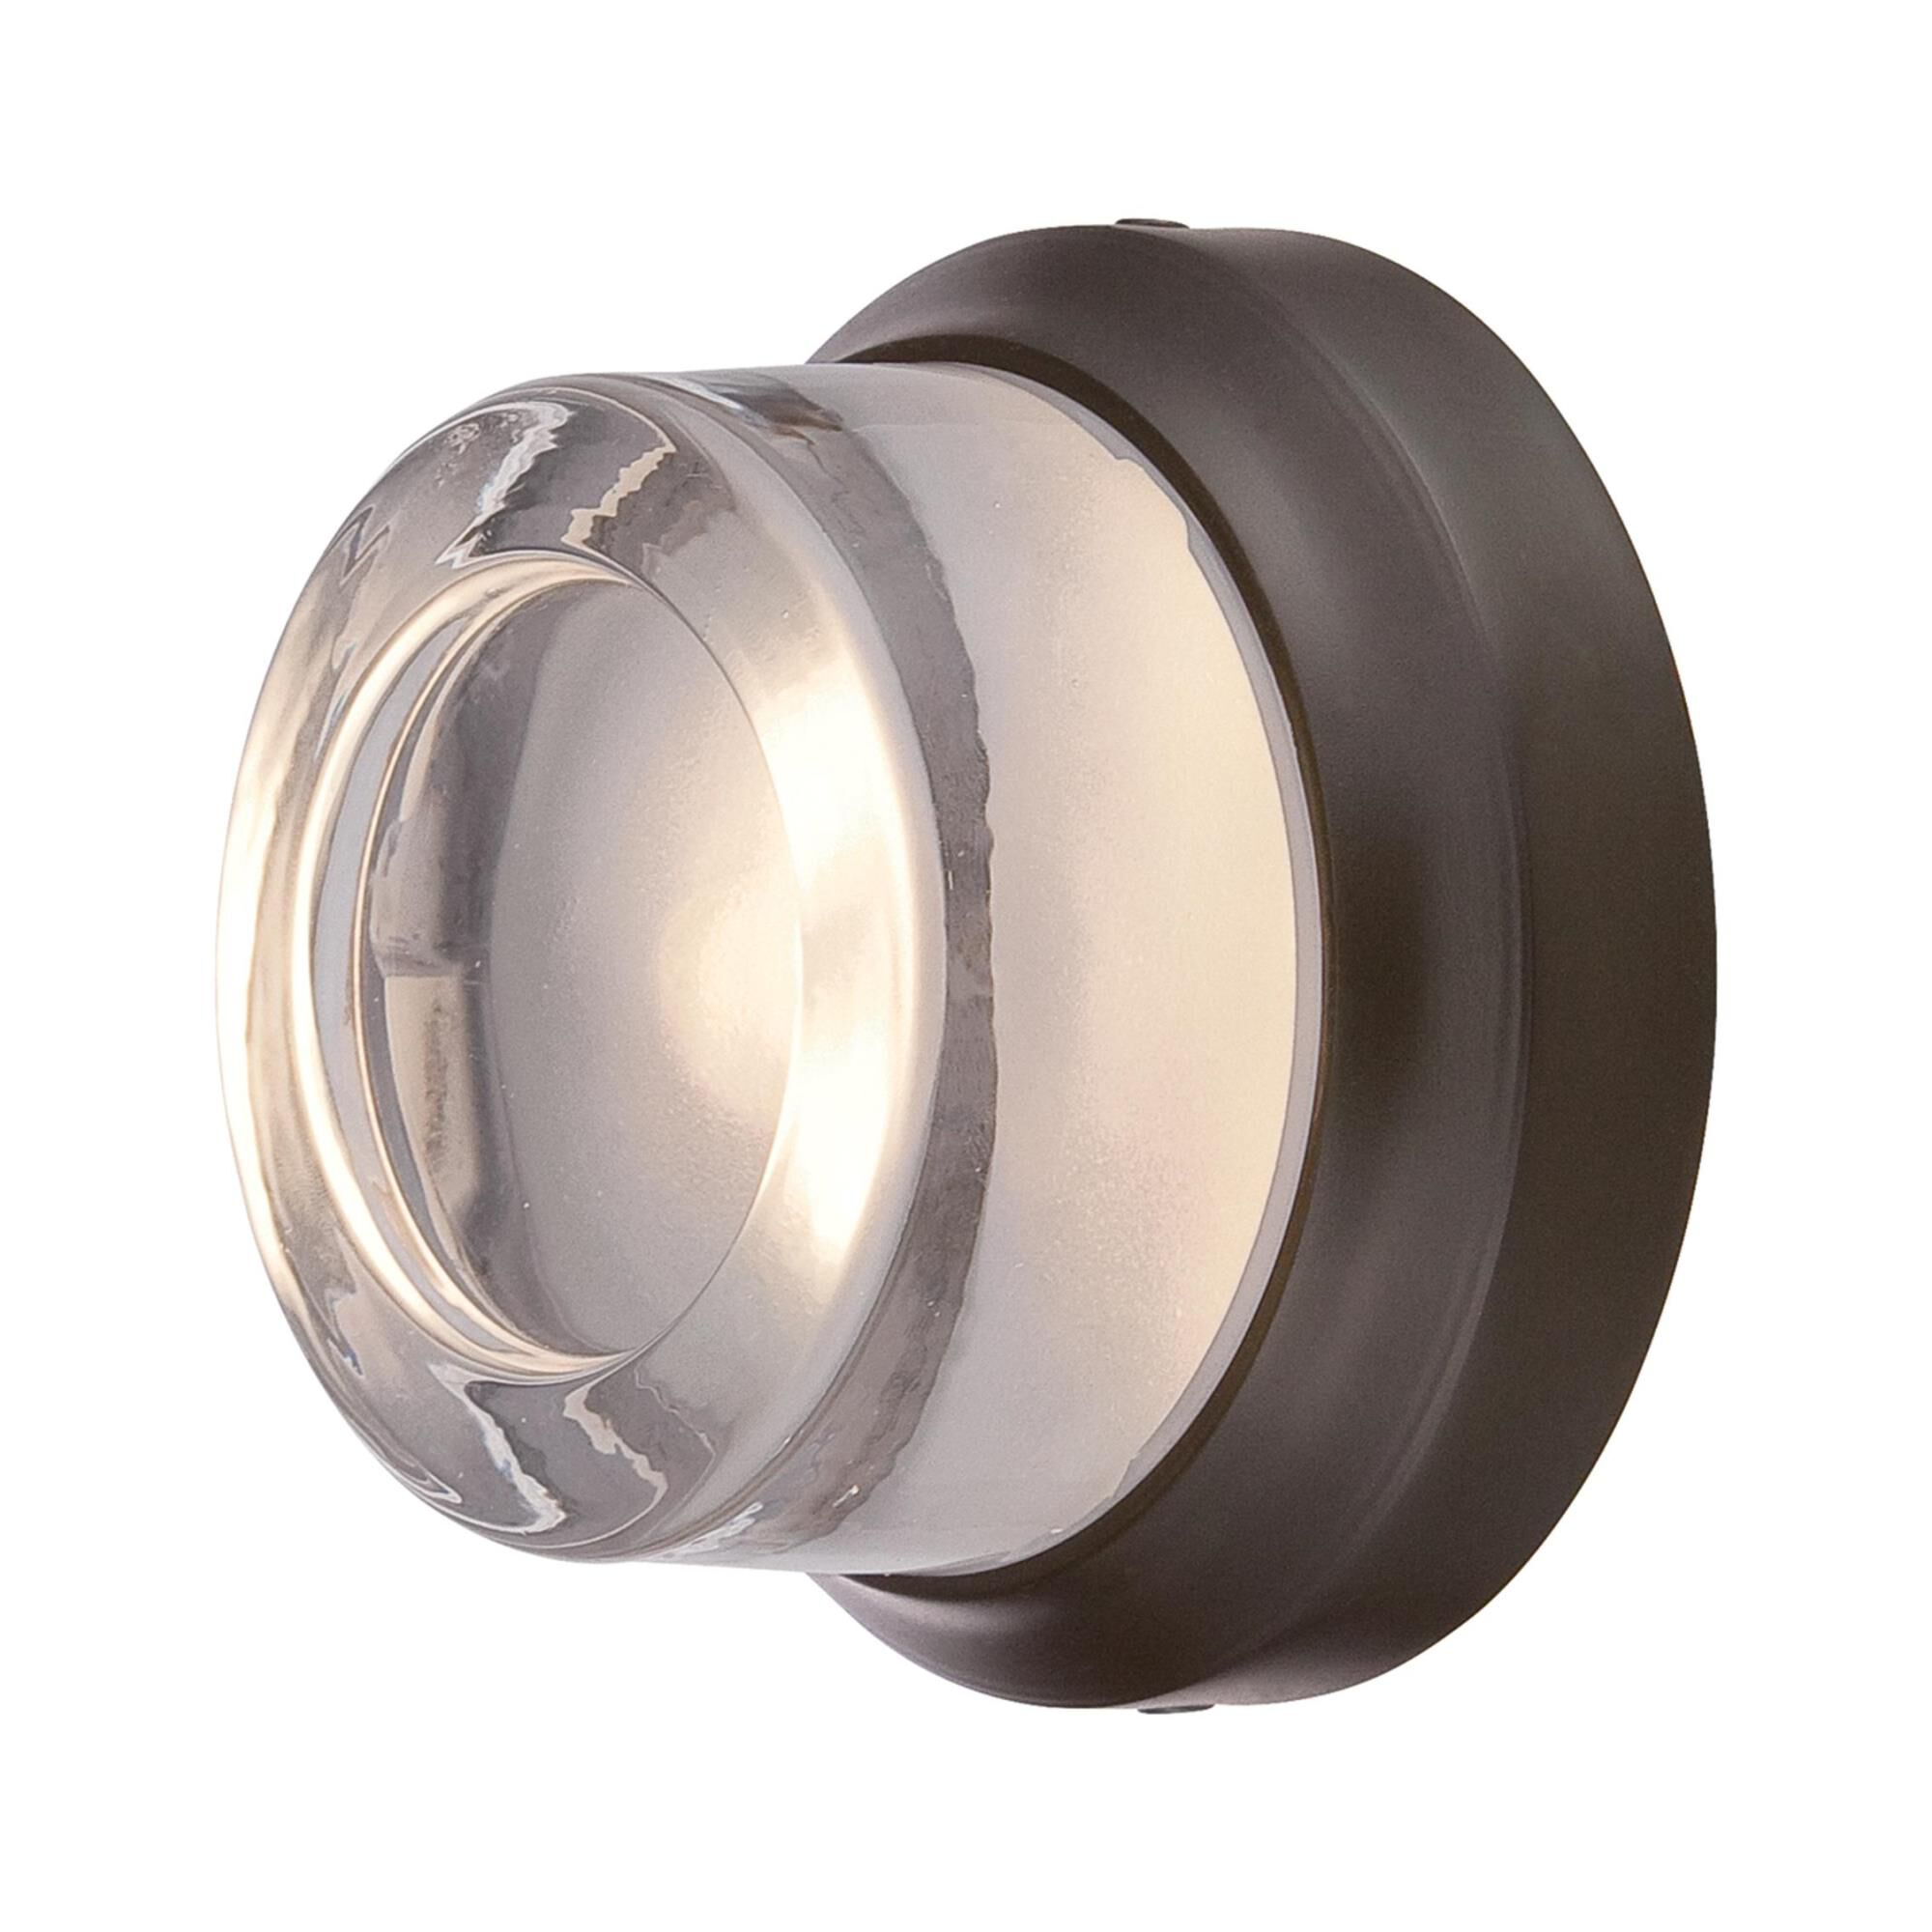 Kovacs Comet 5 Inch Tall 1 Light Led Outdoor Wall Light Comet - P1240-143-l - Nautical